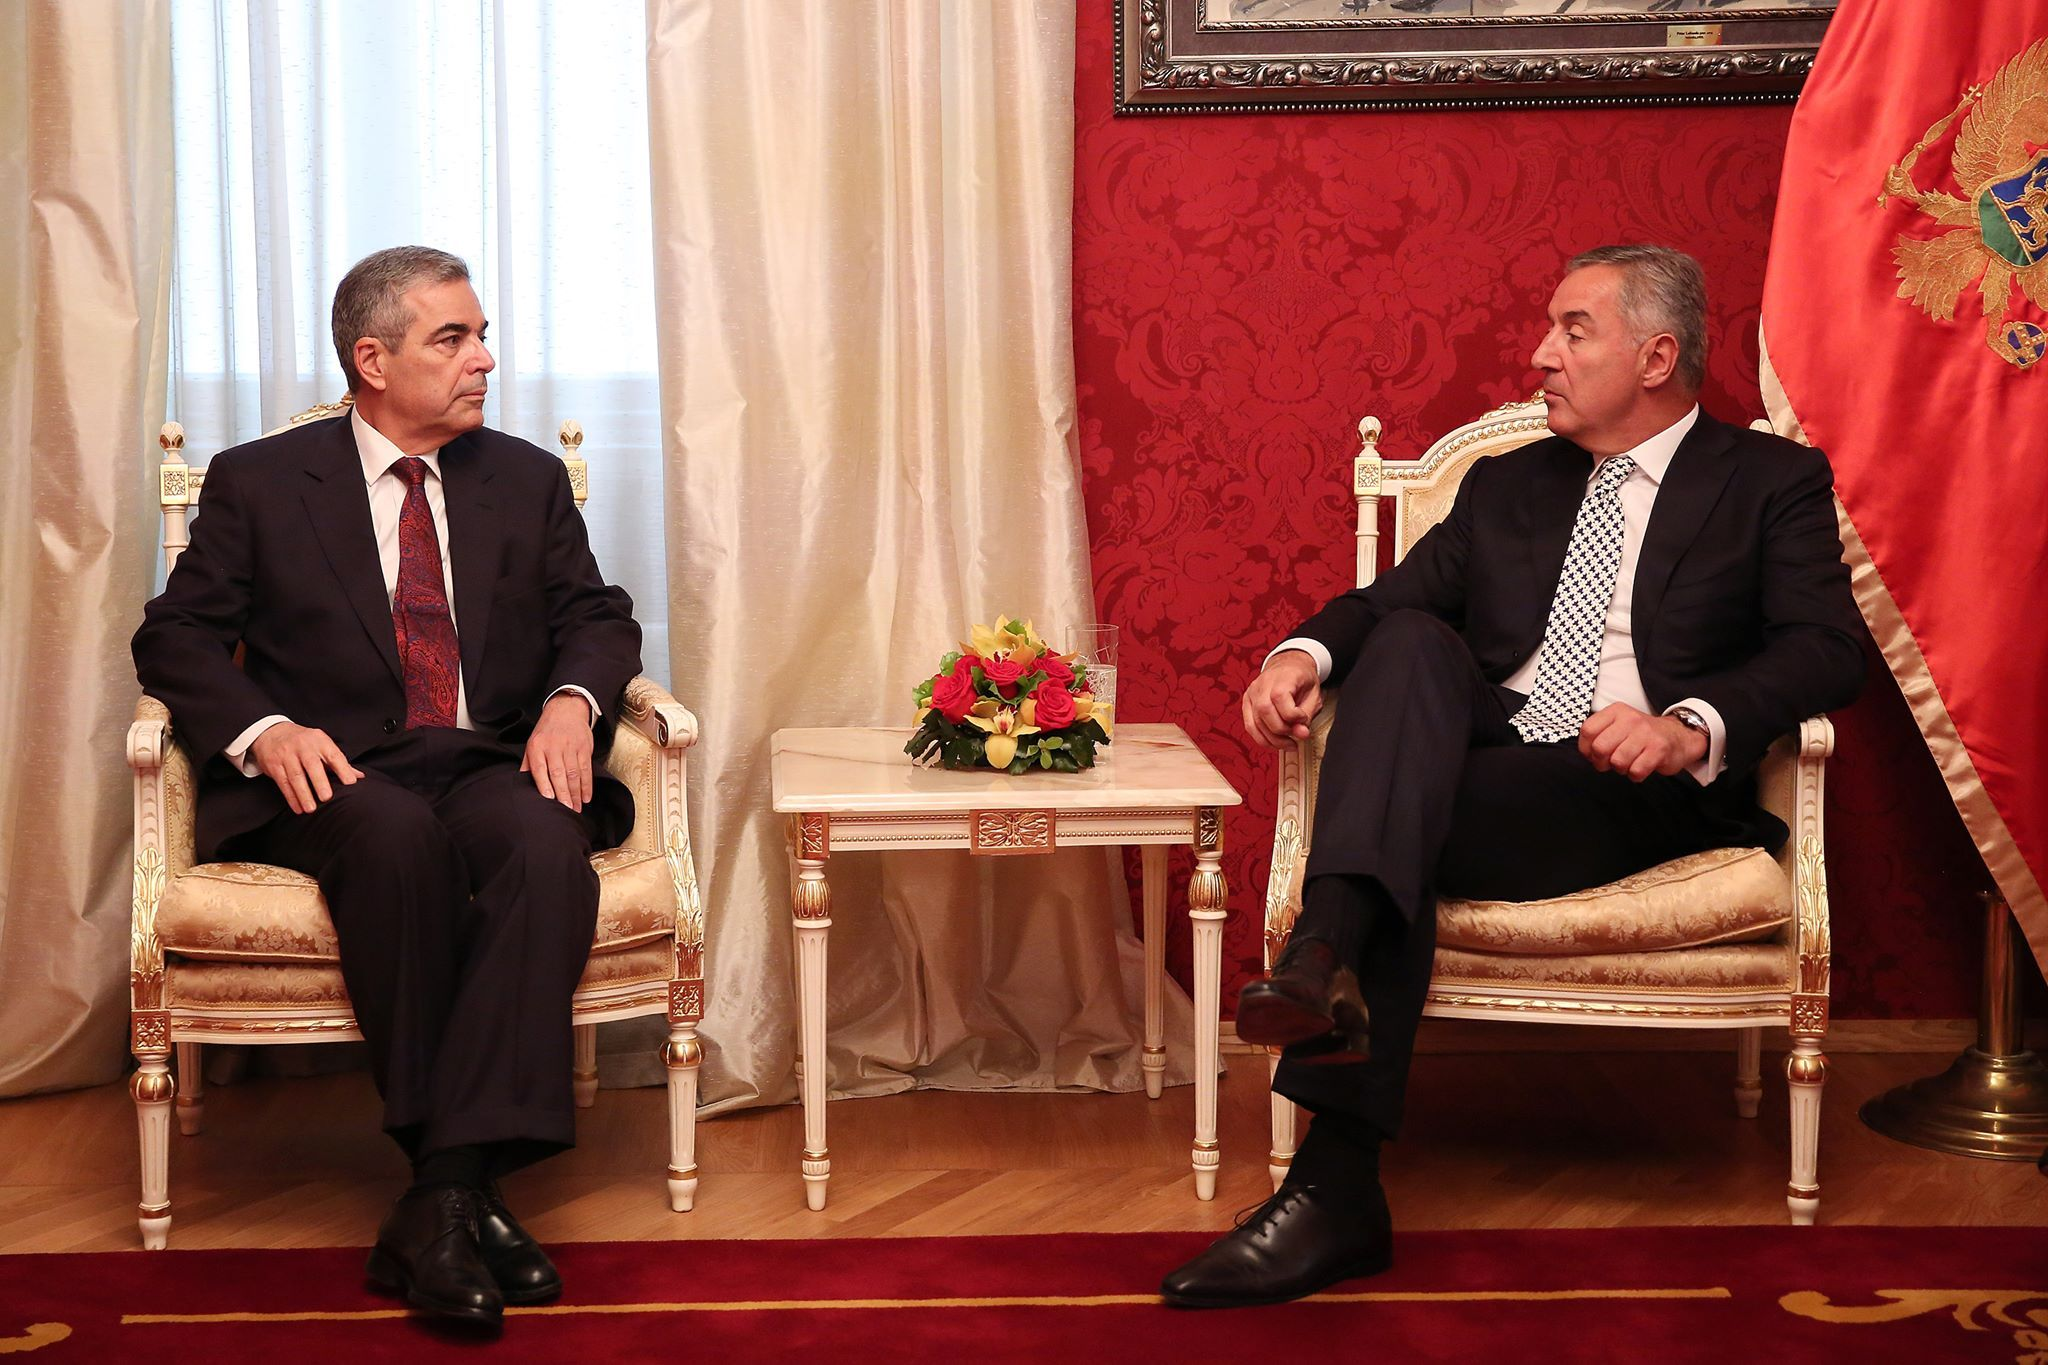 Credentials of Extraordinary and Plenipotentiary Ambassadors for President of Montenegro4